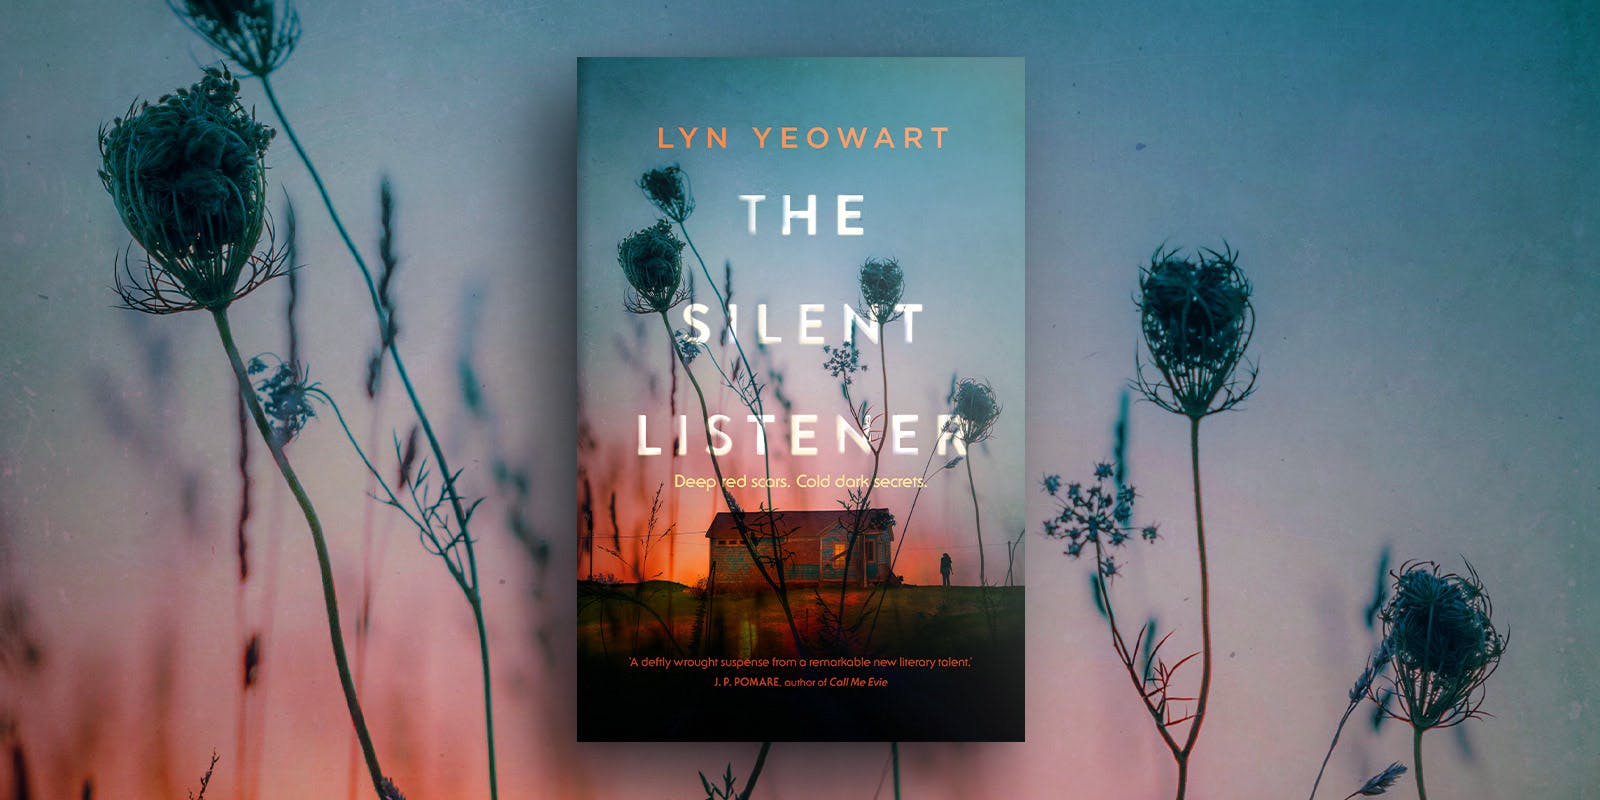 The Silent Listener book club notes